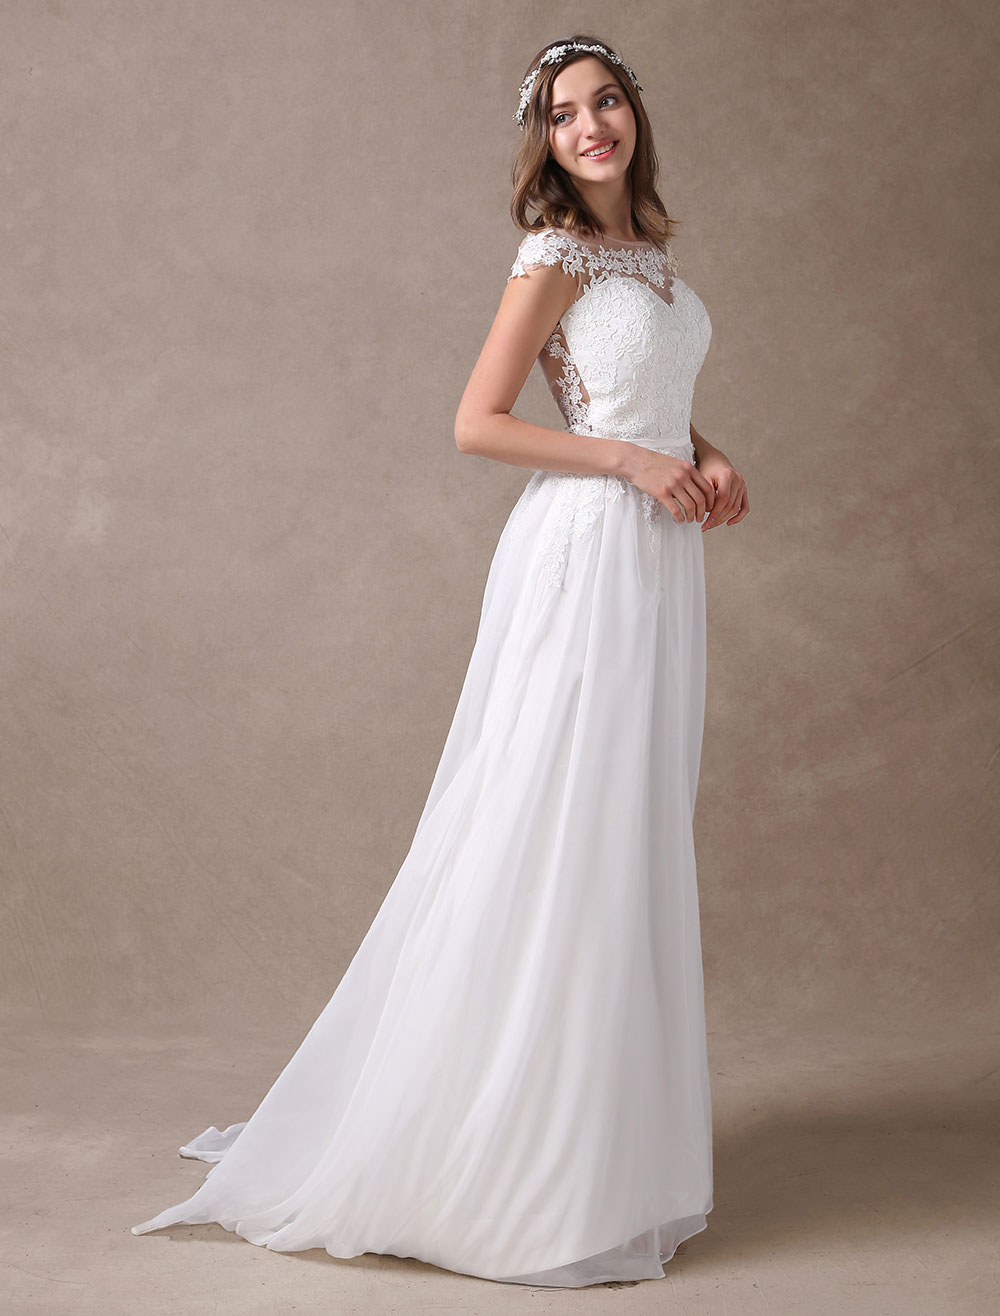 2019 Latest Beach Wedding Dresses For Beach Wedding